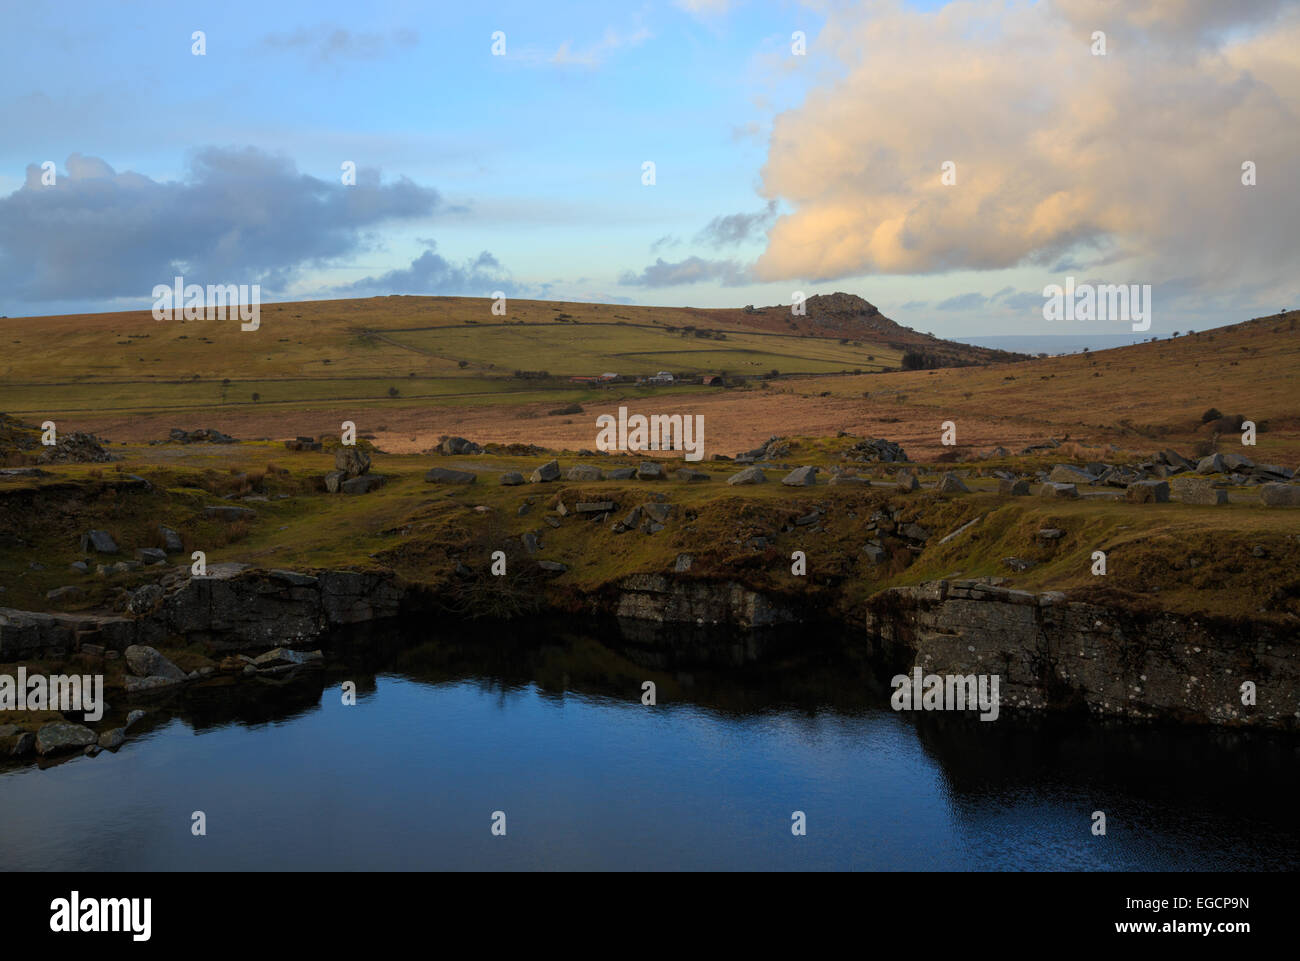 The Flooded Gold Diggings quarry on Bodmin Moor - Stock Image